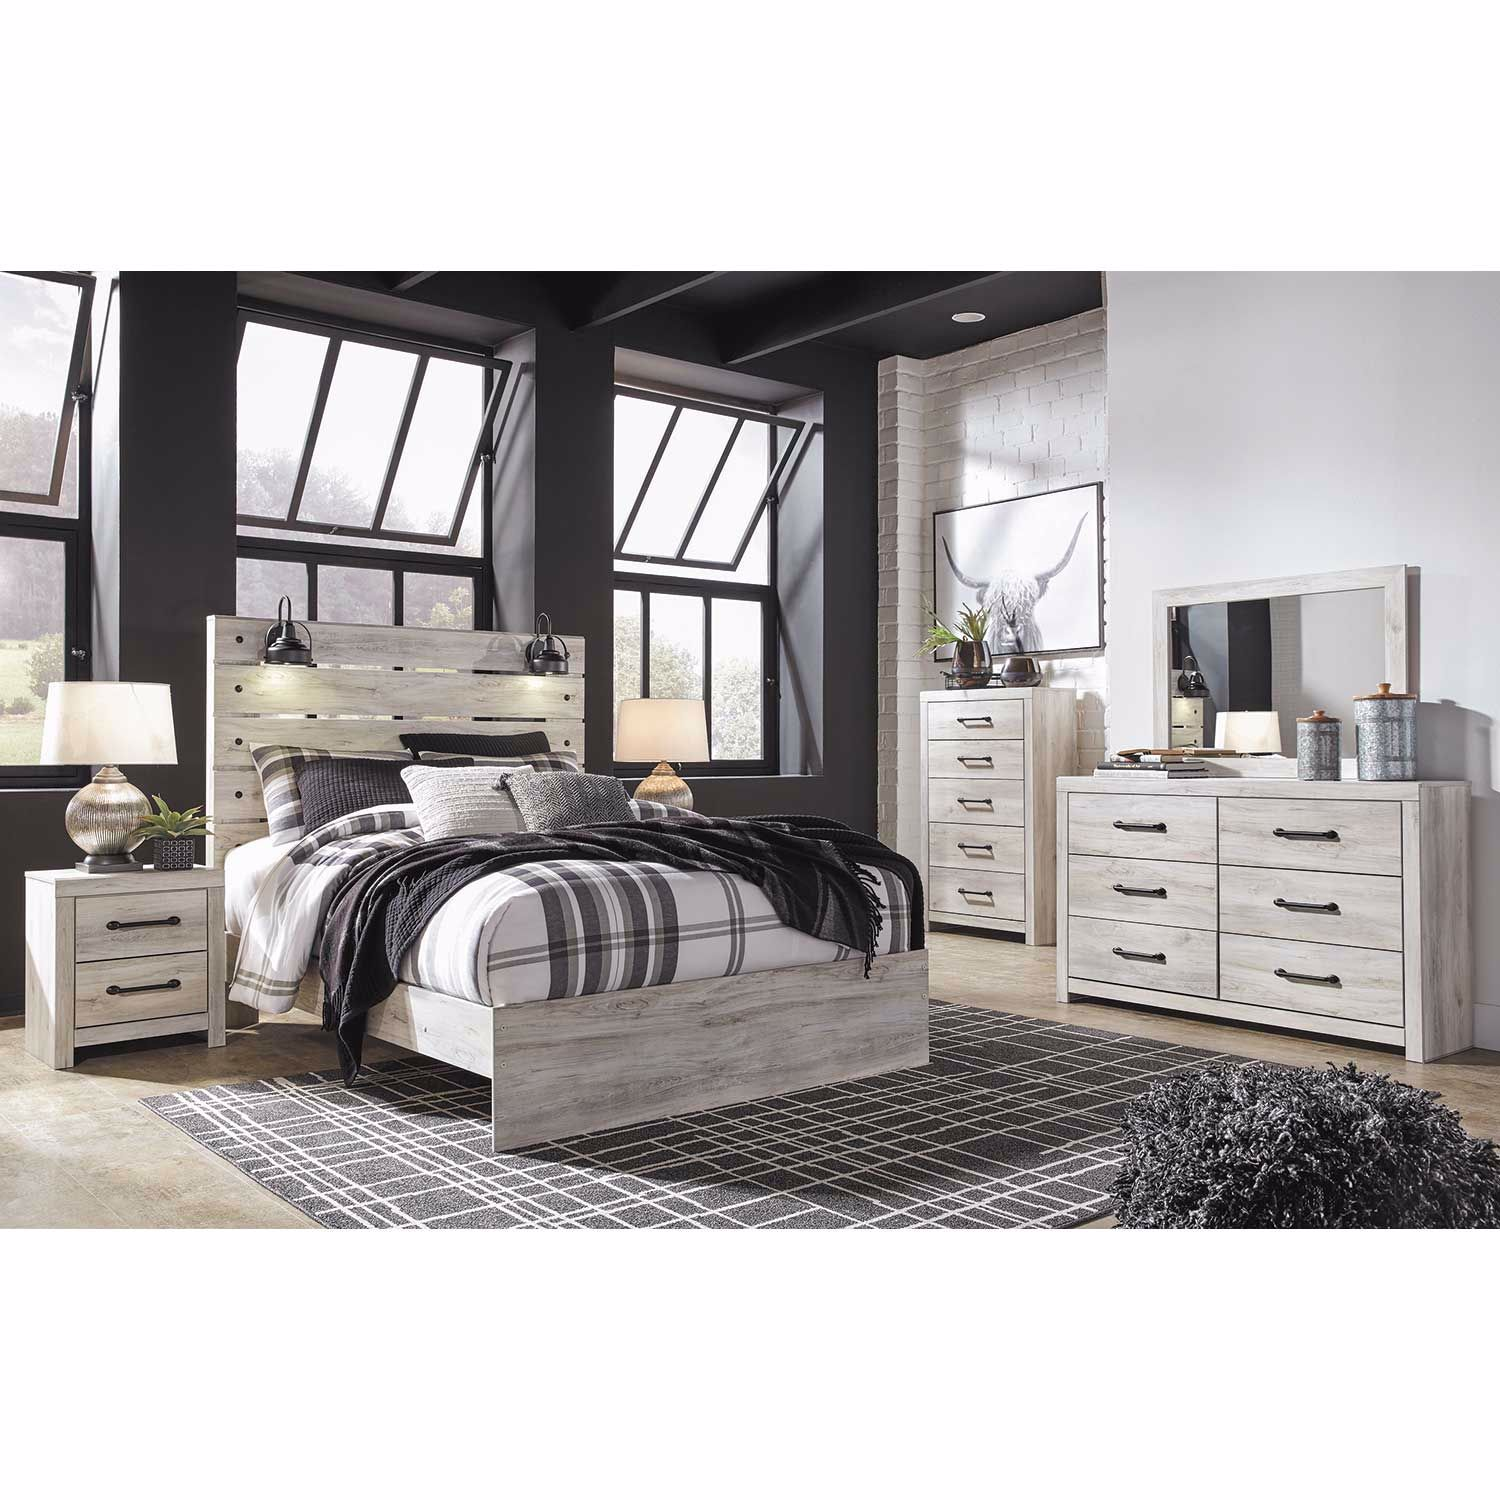 Cambeck 5 Piece Bedroom Set B192 Qbed 31 36 46 92 Ashley